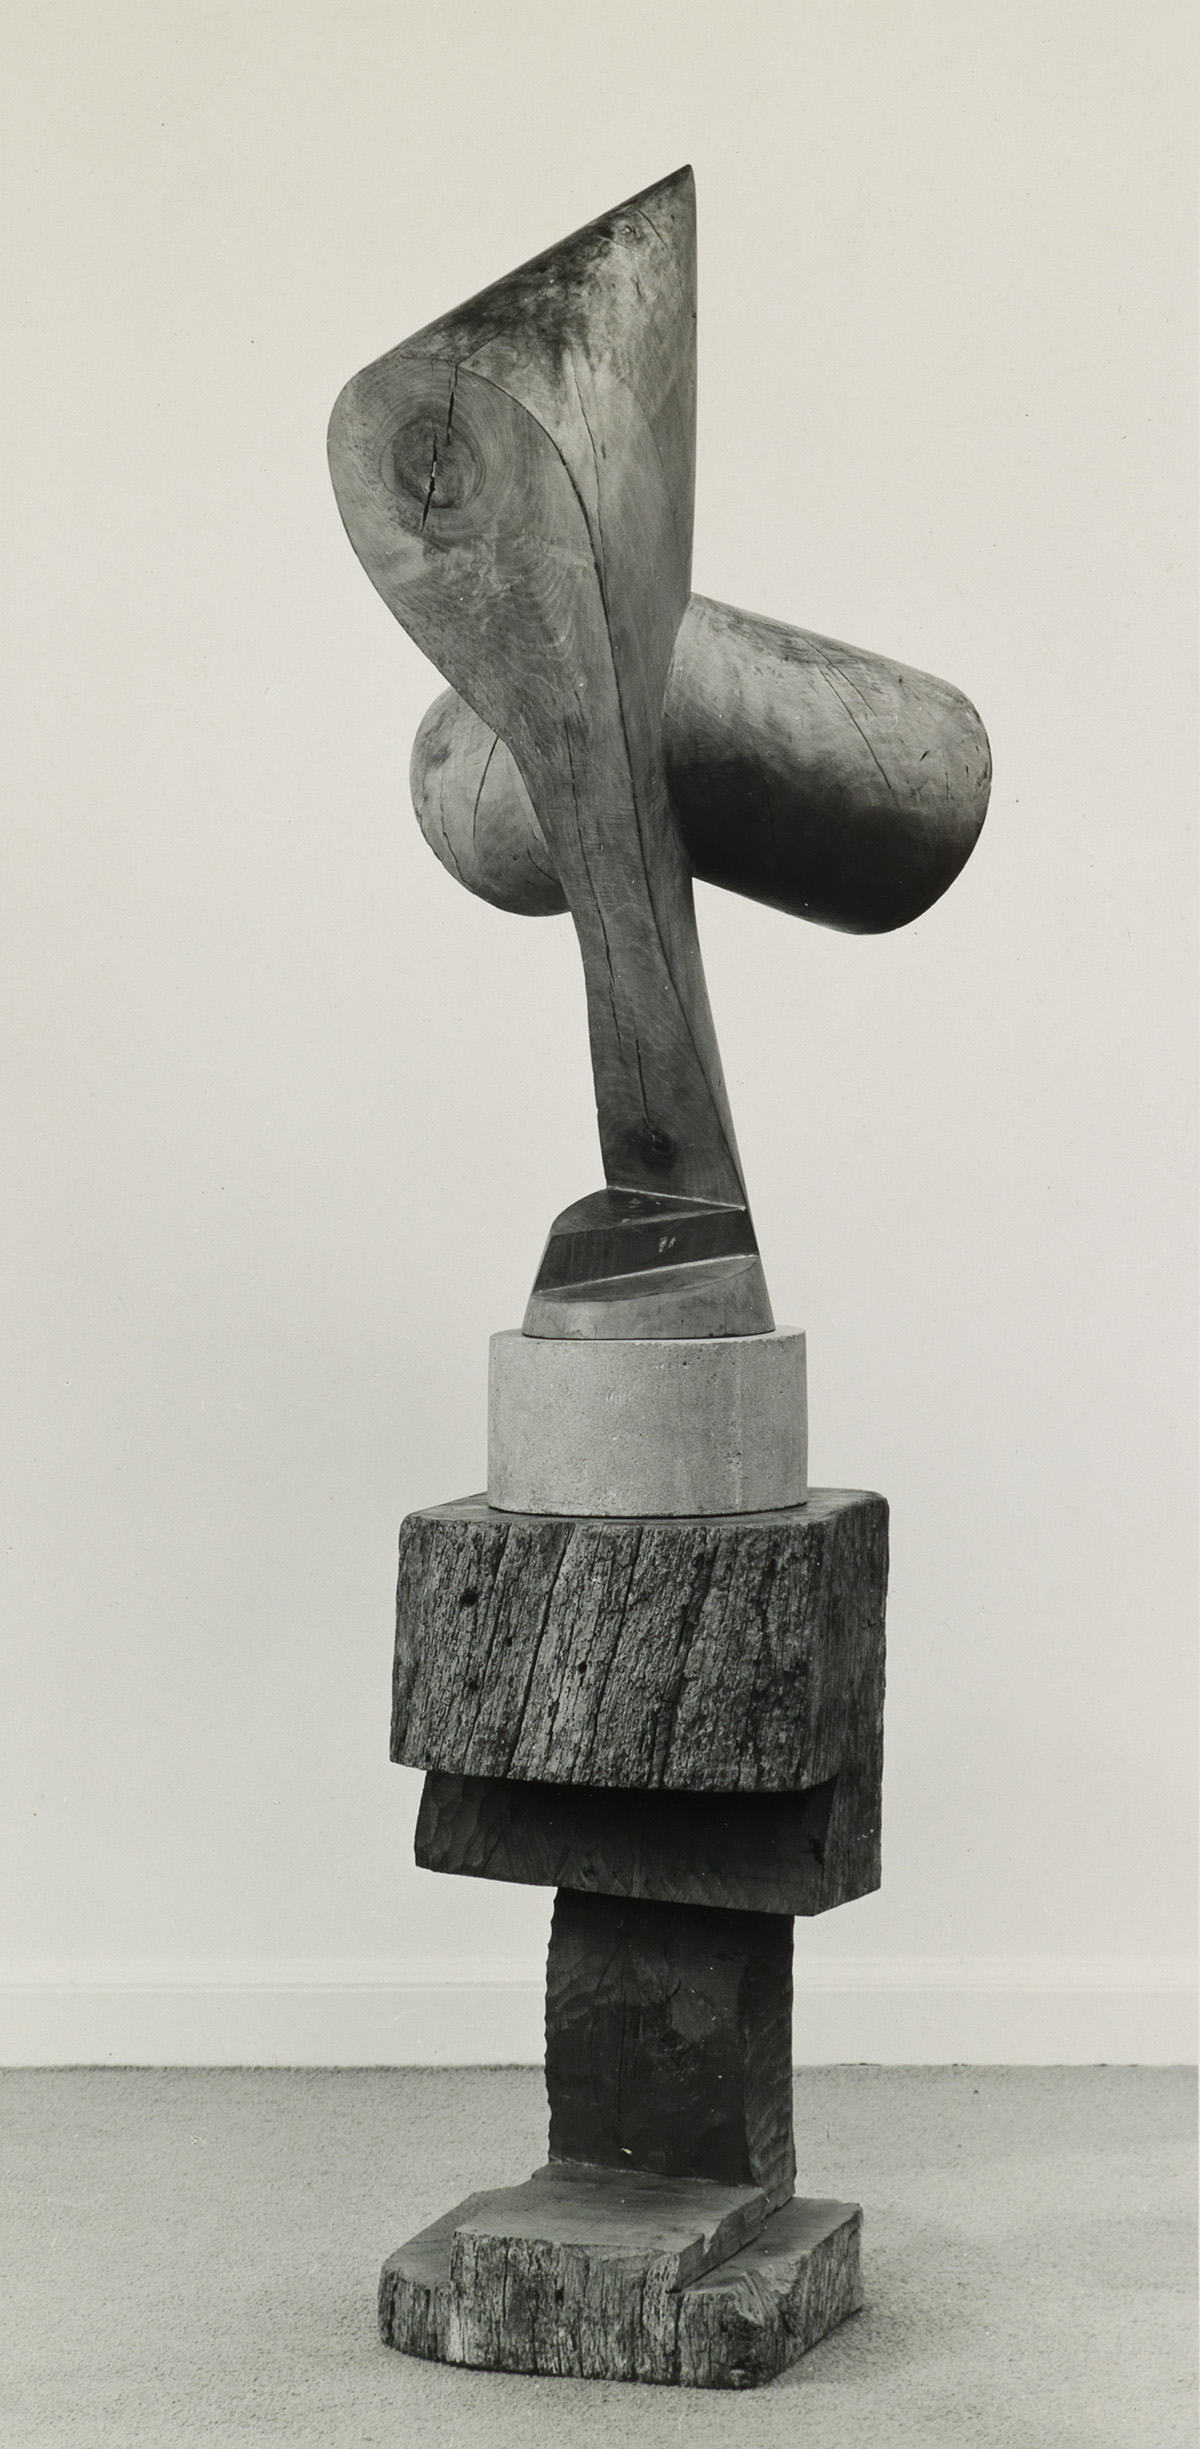 (CONSTANTIN-BRÂNCUSI)-A-photograph-featuring-the-early-sculp